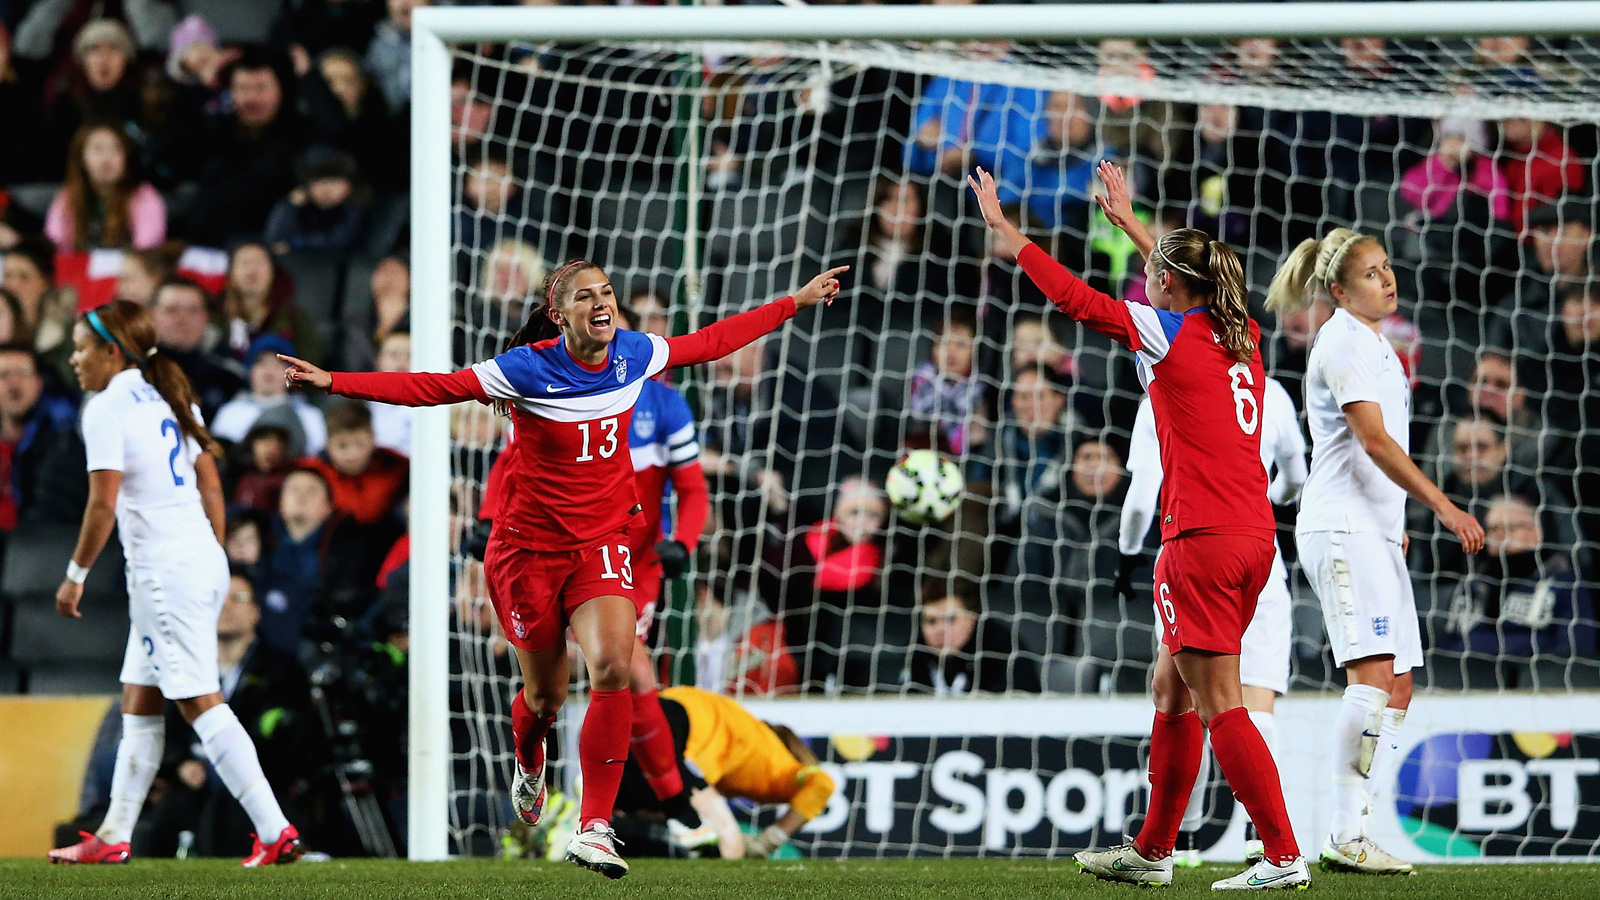 Alex Morgan celebrates scoring the lone goal in the USWNT's 1-0 win over England in a friendly at Stadium mk in Milton Keynes.